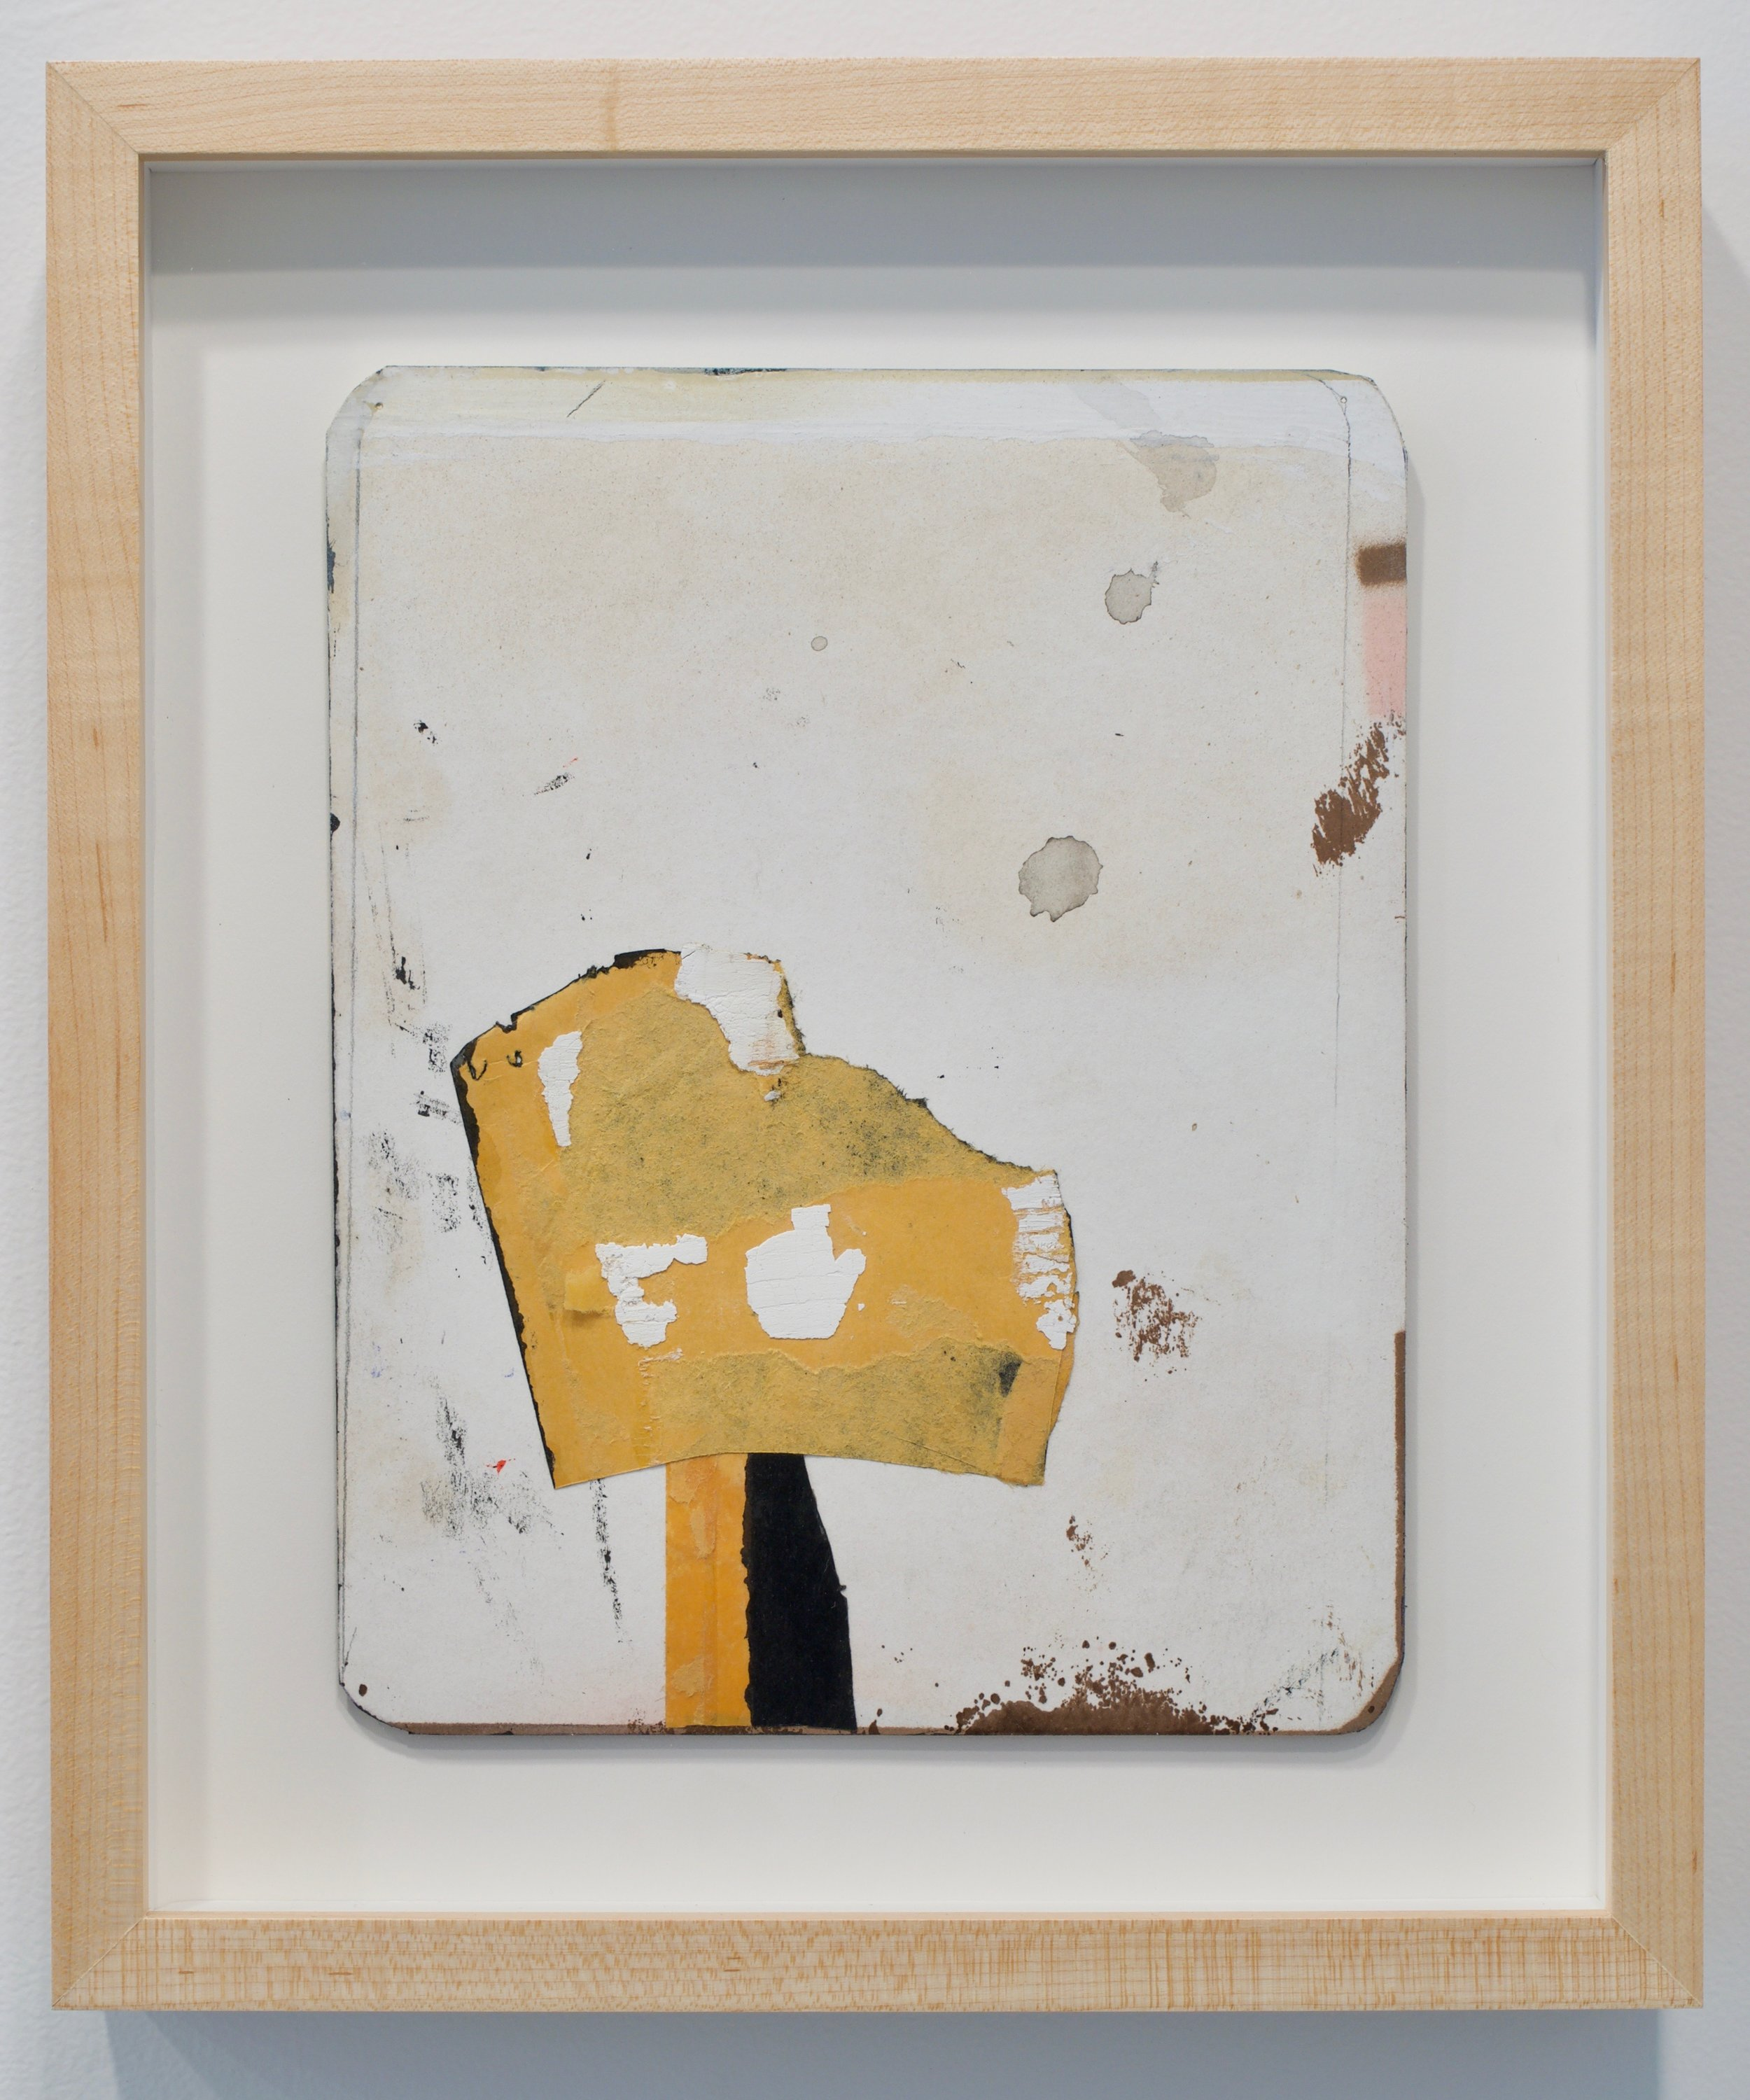 "Jeff Feld, ""Untitled"", 2015. Collage, ink, enamel, graphite on office mail envelope. 13.5x11.5 in (framed)"